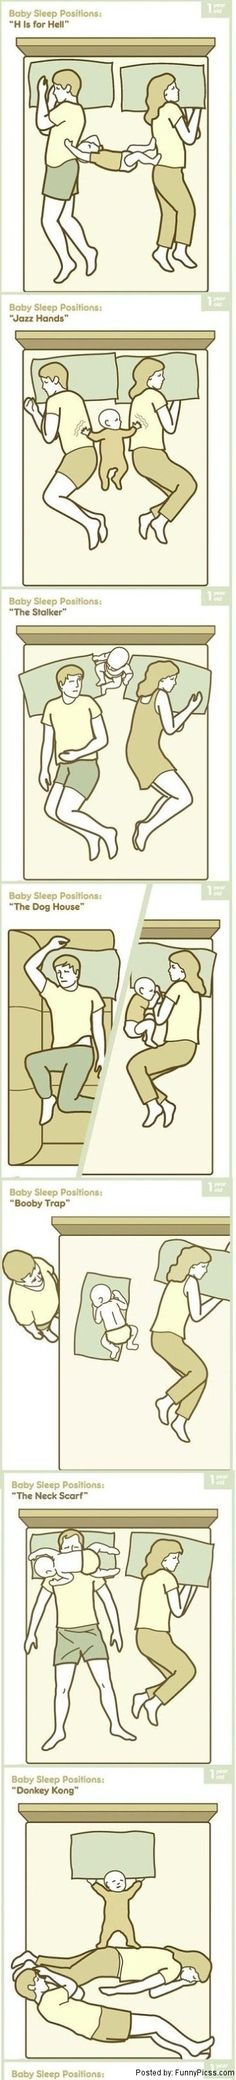 Yup this is about how it works in our house when we let Livi sleep with us